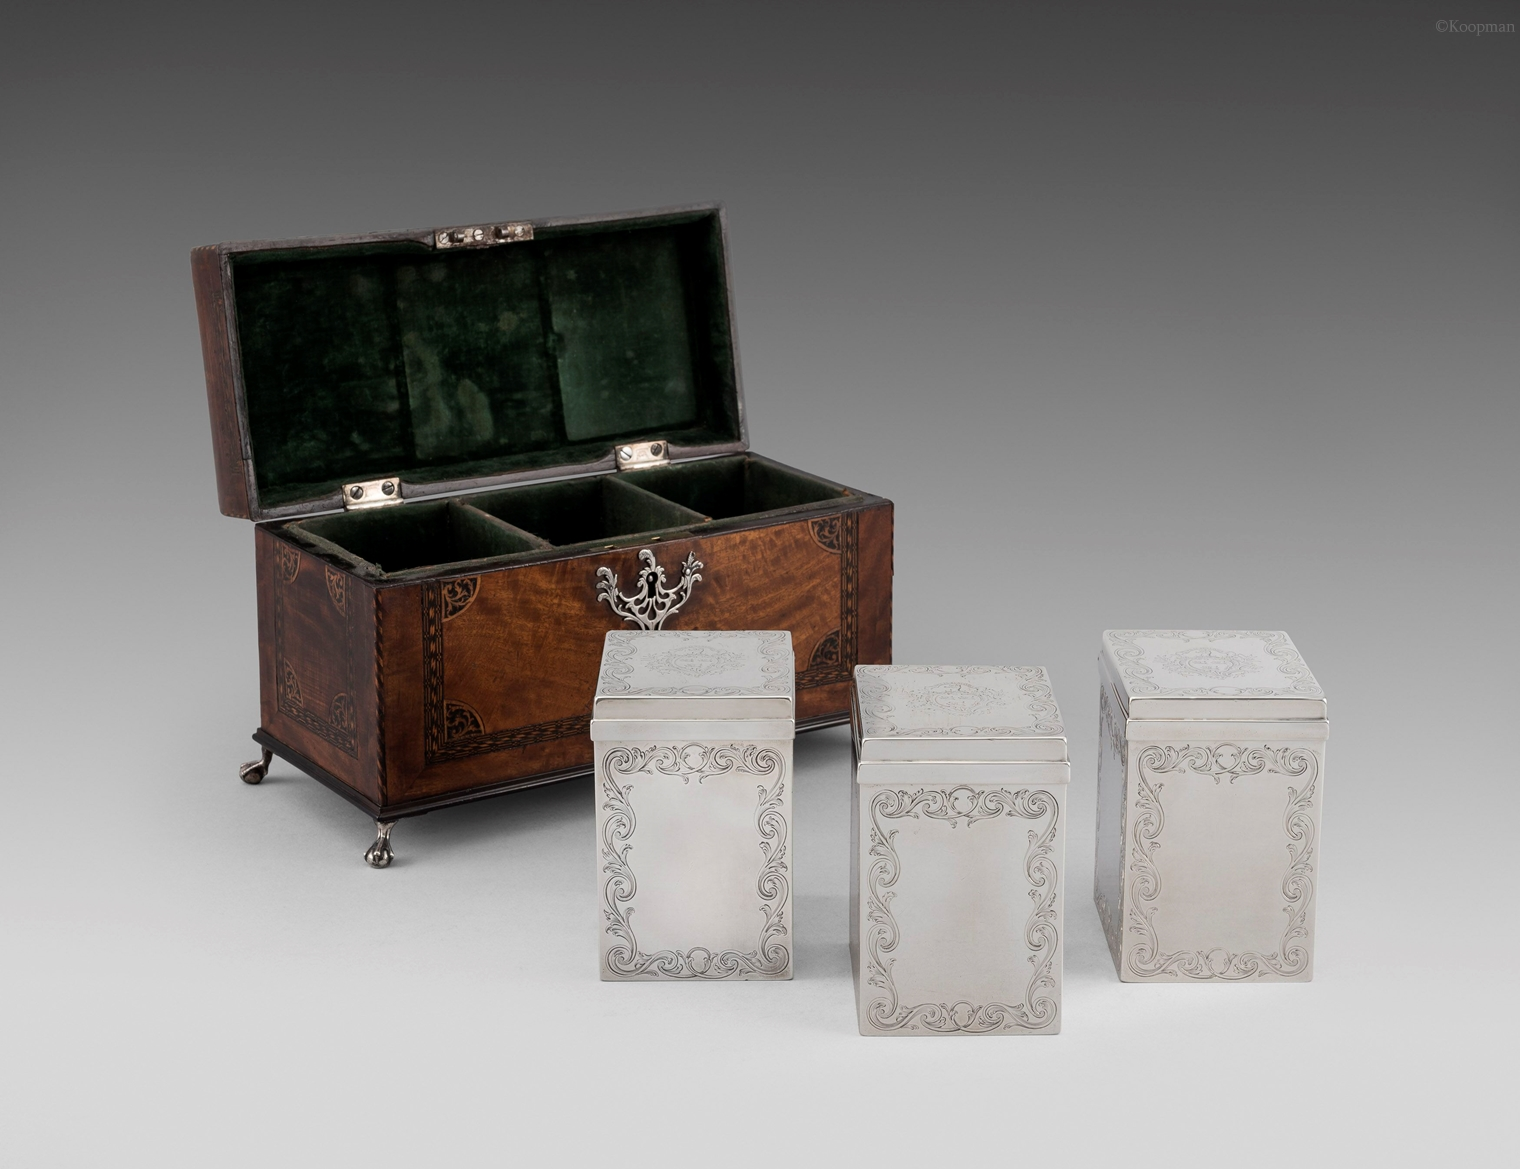 A Set of Three George III Tea Caddies in a Fitted Box